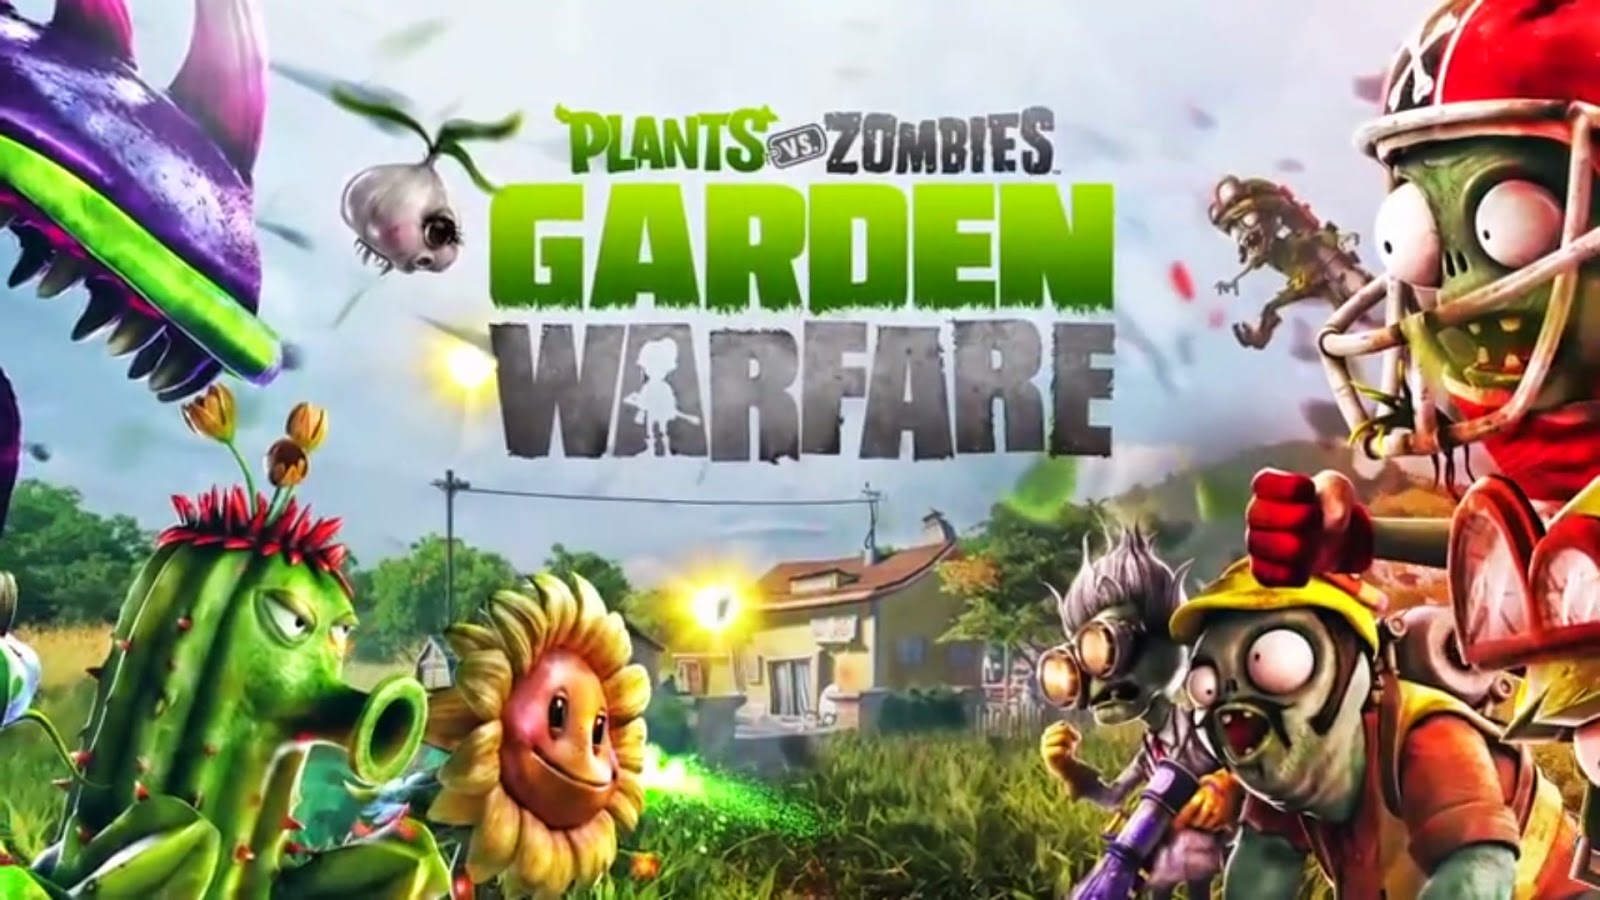 Plants Vs Zombies Garden Warfare Download Pc Free Coins Kit Free Hack Cheats Pirater